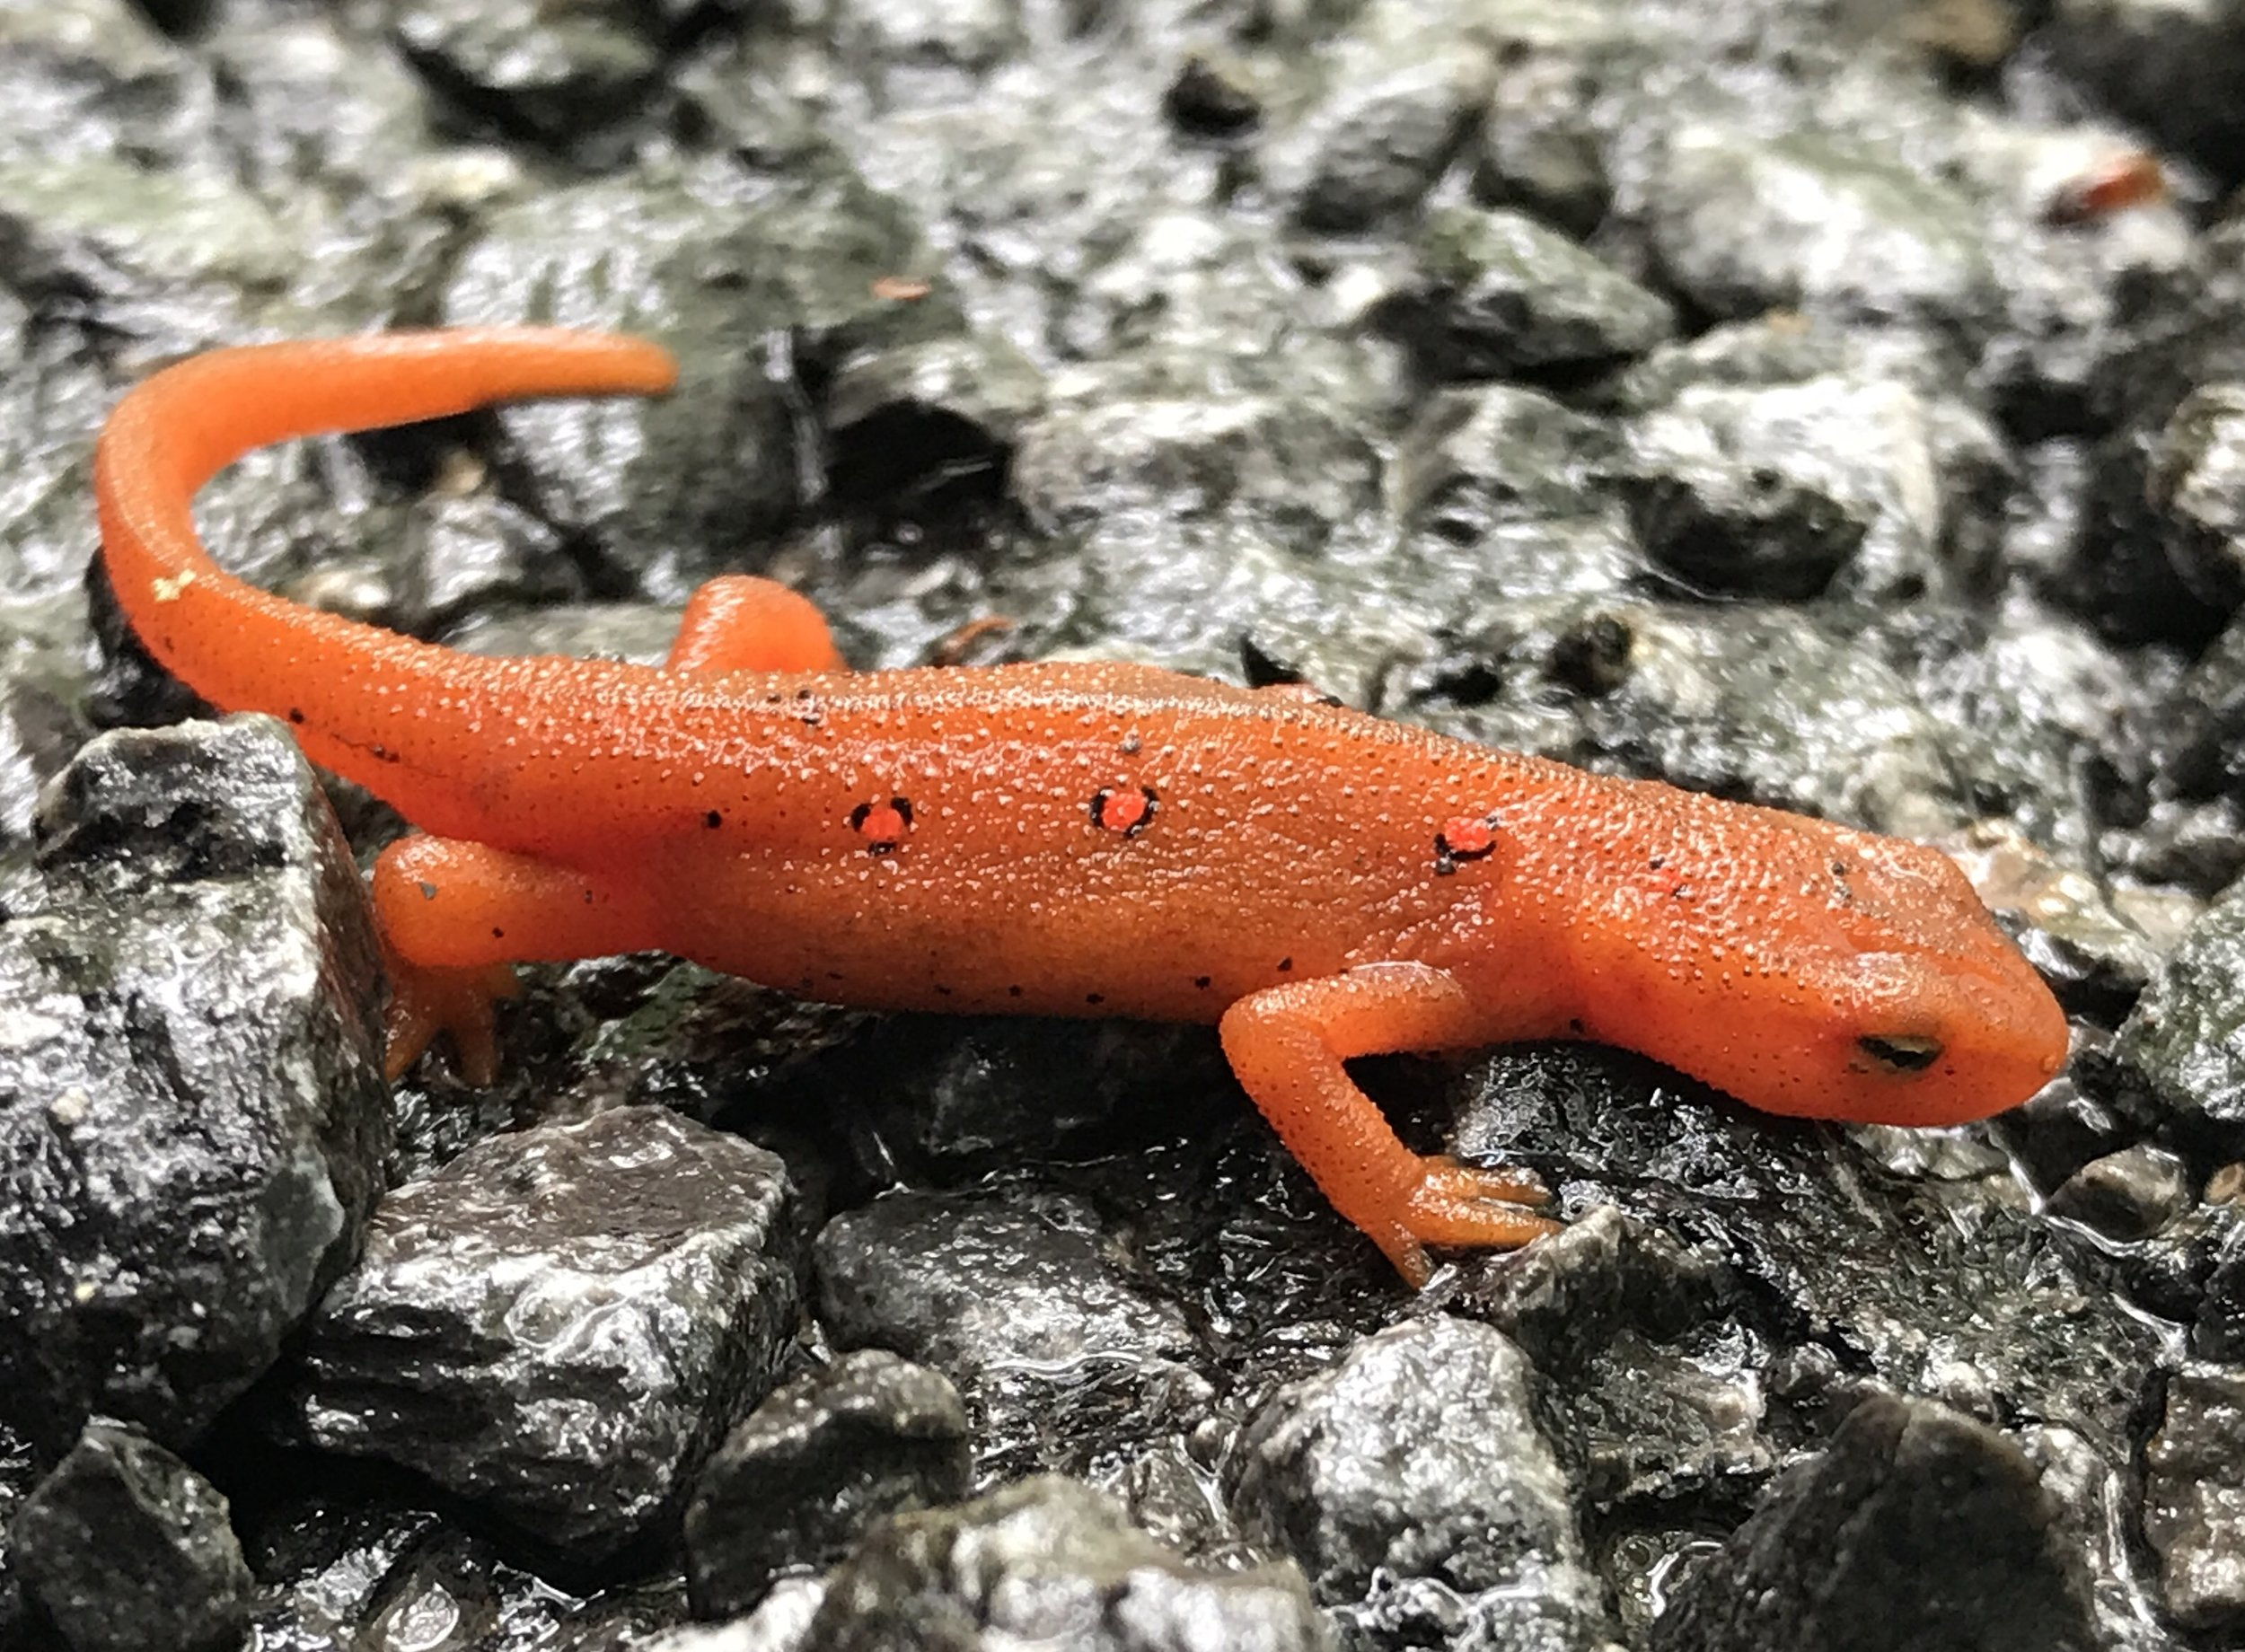 Sadly, this newt may have been dead, trapped on fresh paved asphalt.